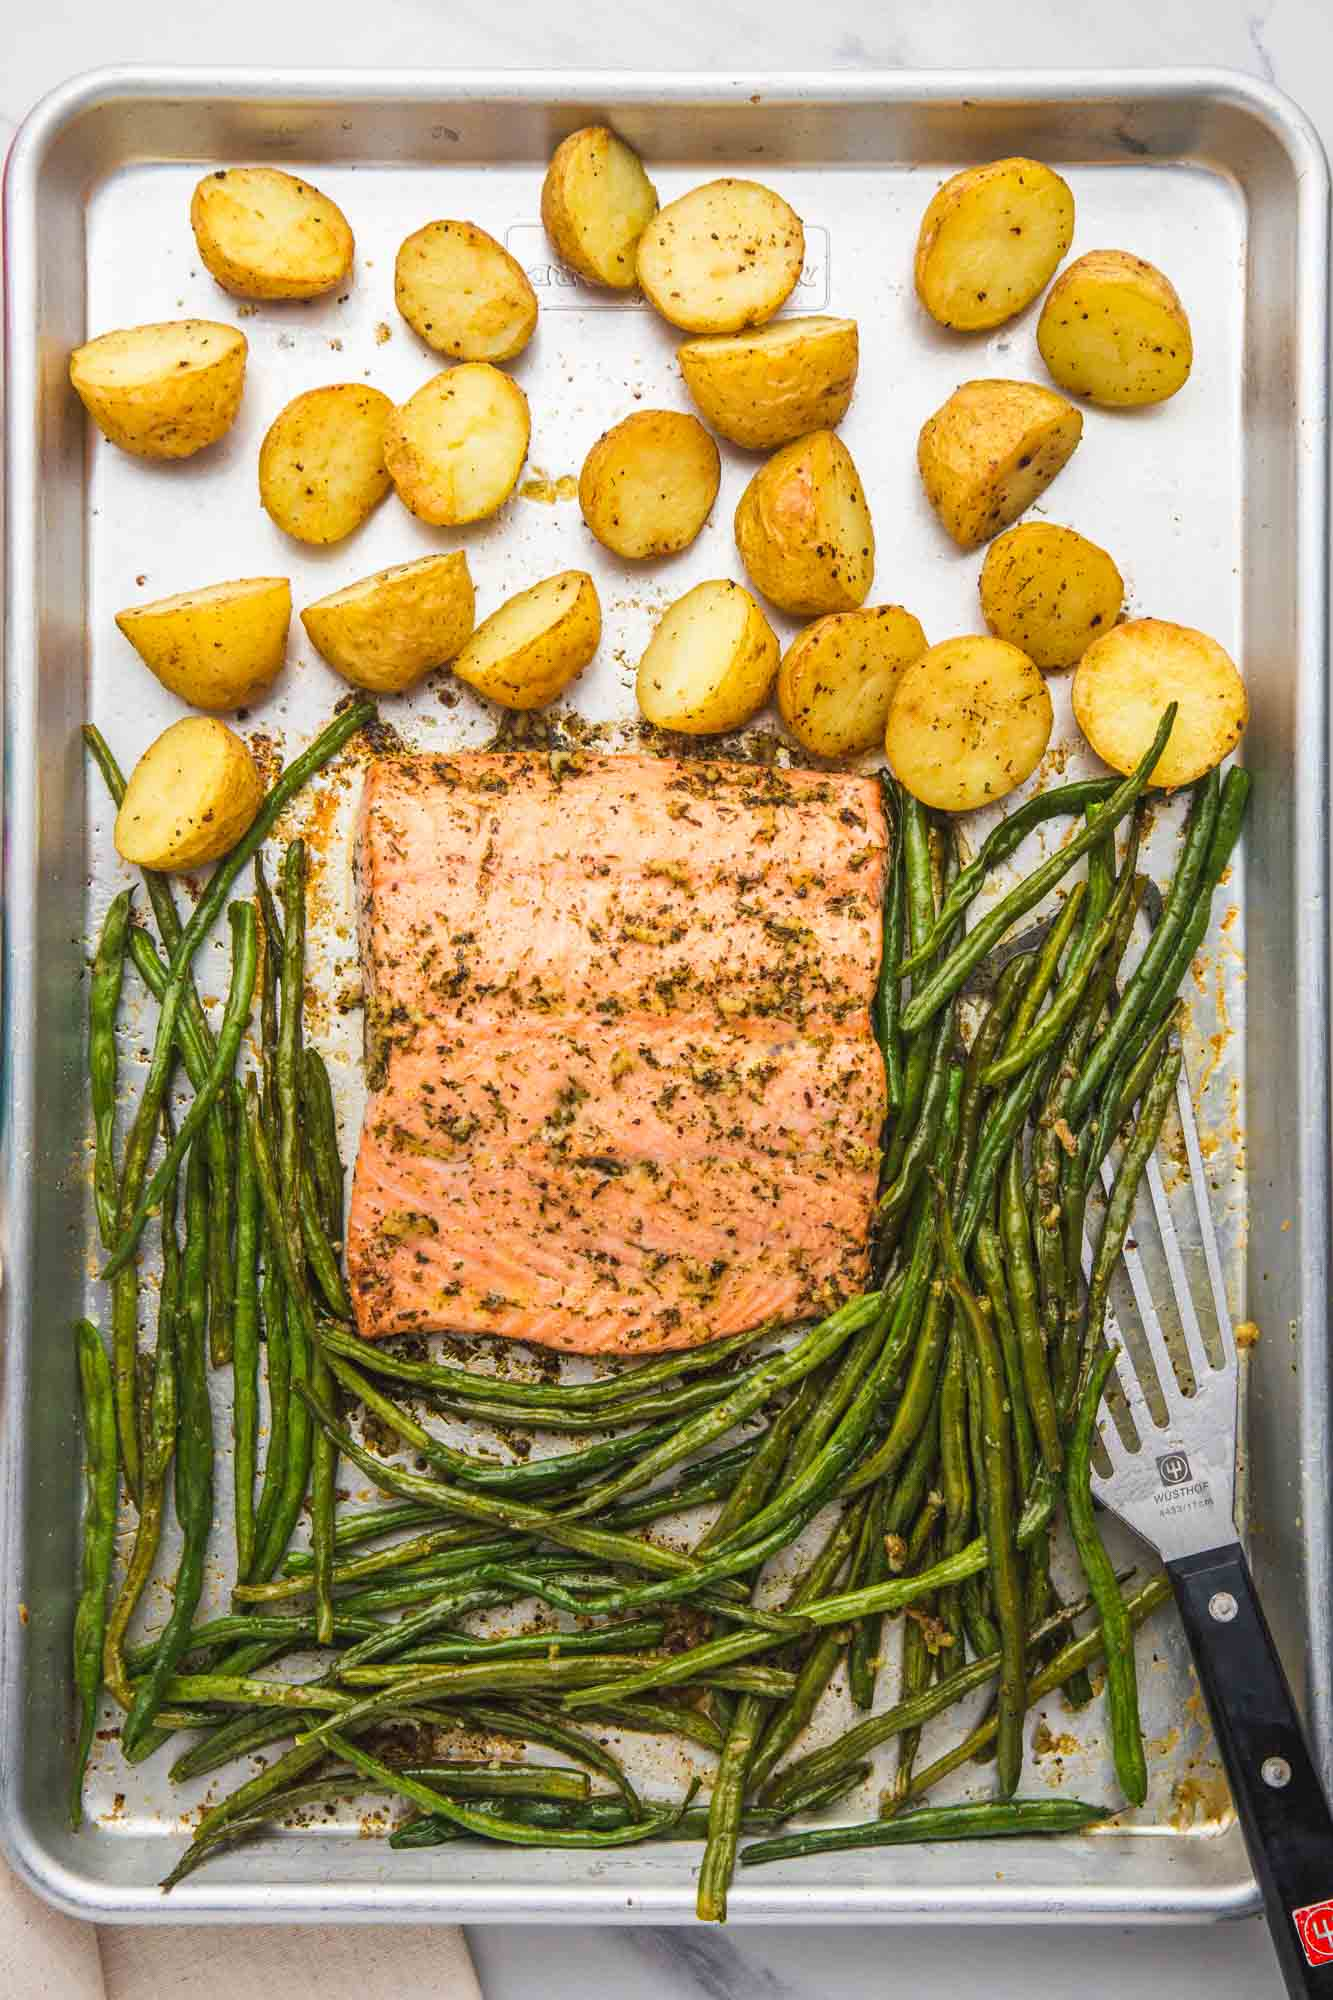 Overhead shot of sheet pan salmon with baby potatoes, green beans, and a fish spatula on the side.